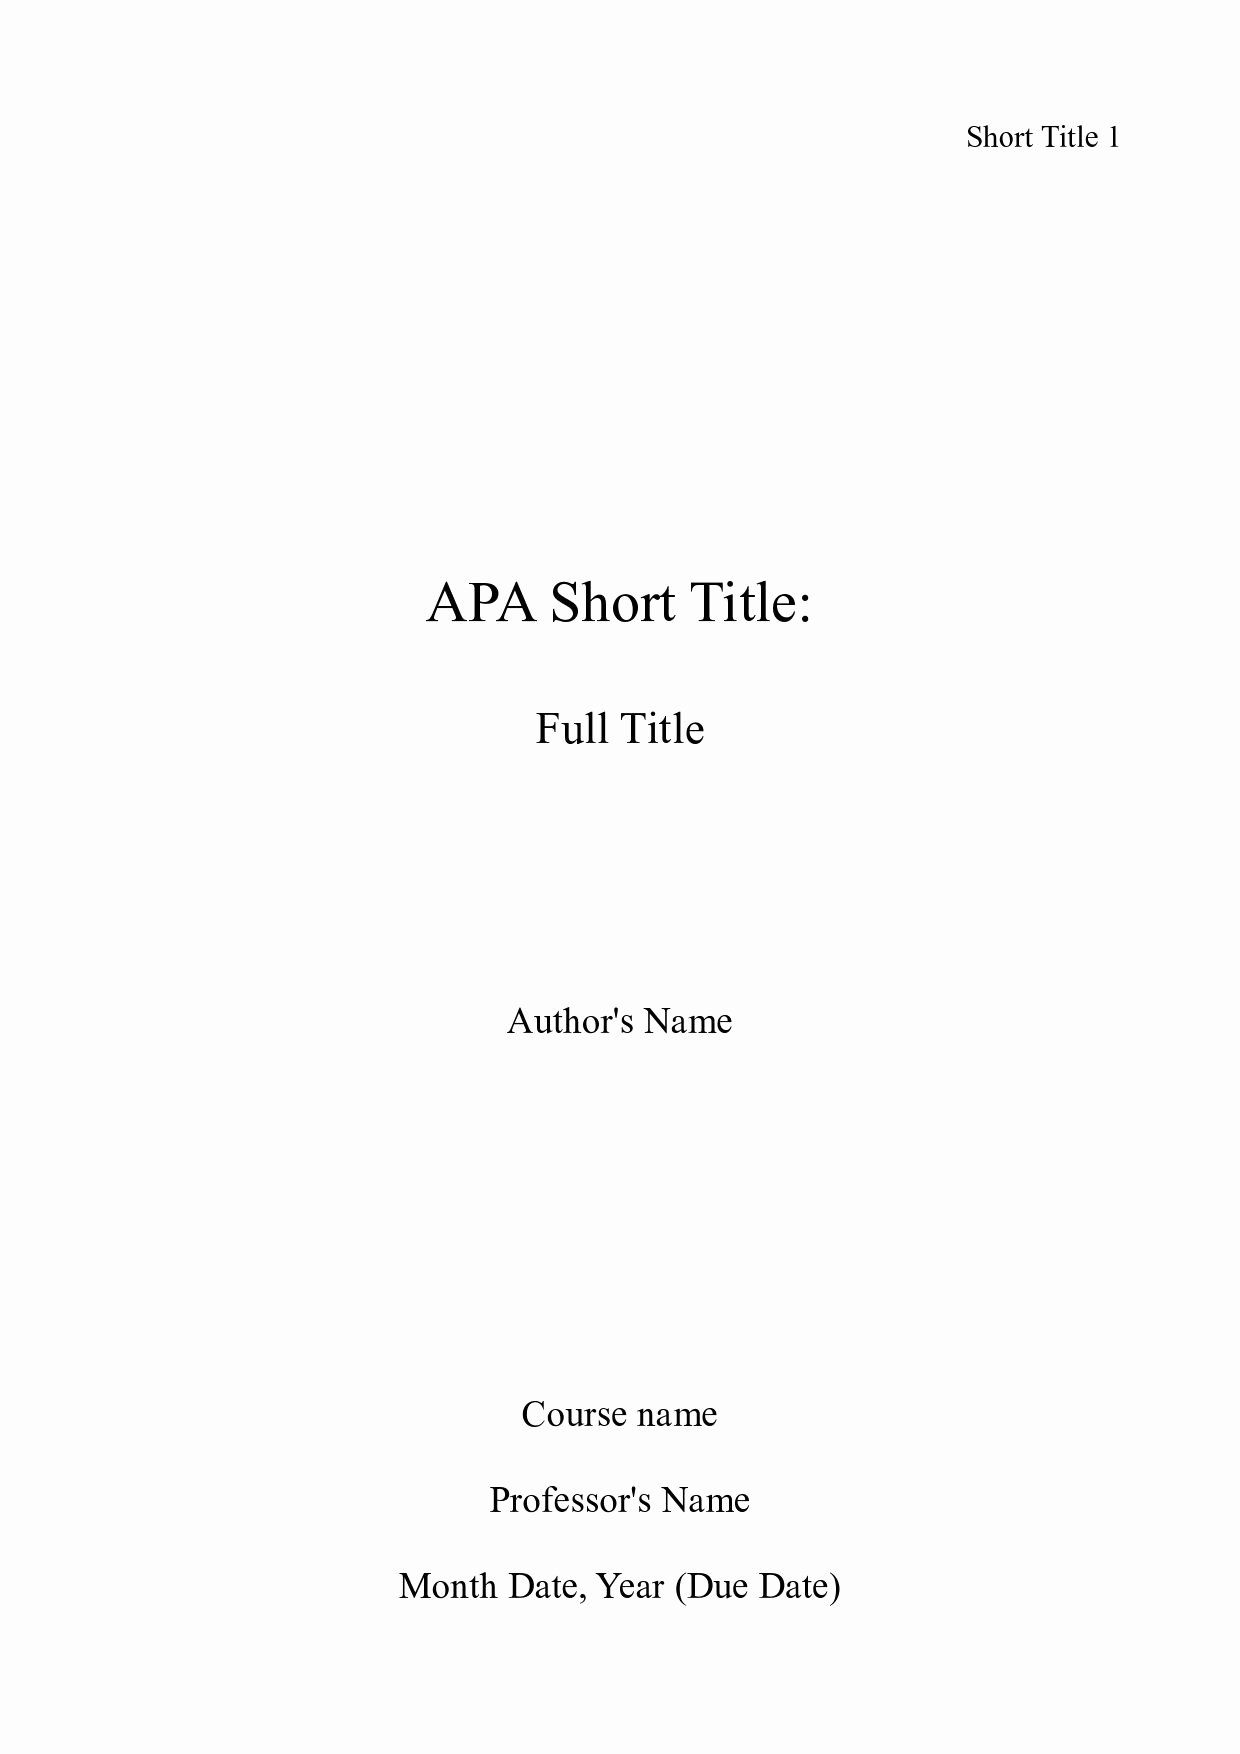 Lab Report Cover Page Apa New Picture Of Of An Apa Title Page Apa Essay Essay Format Essay Cover Page